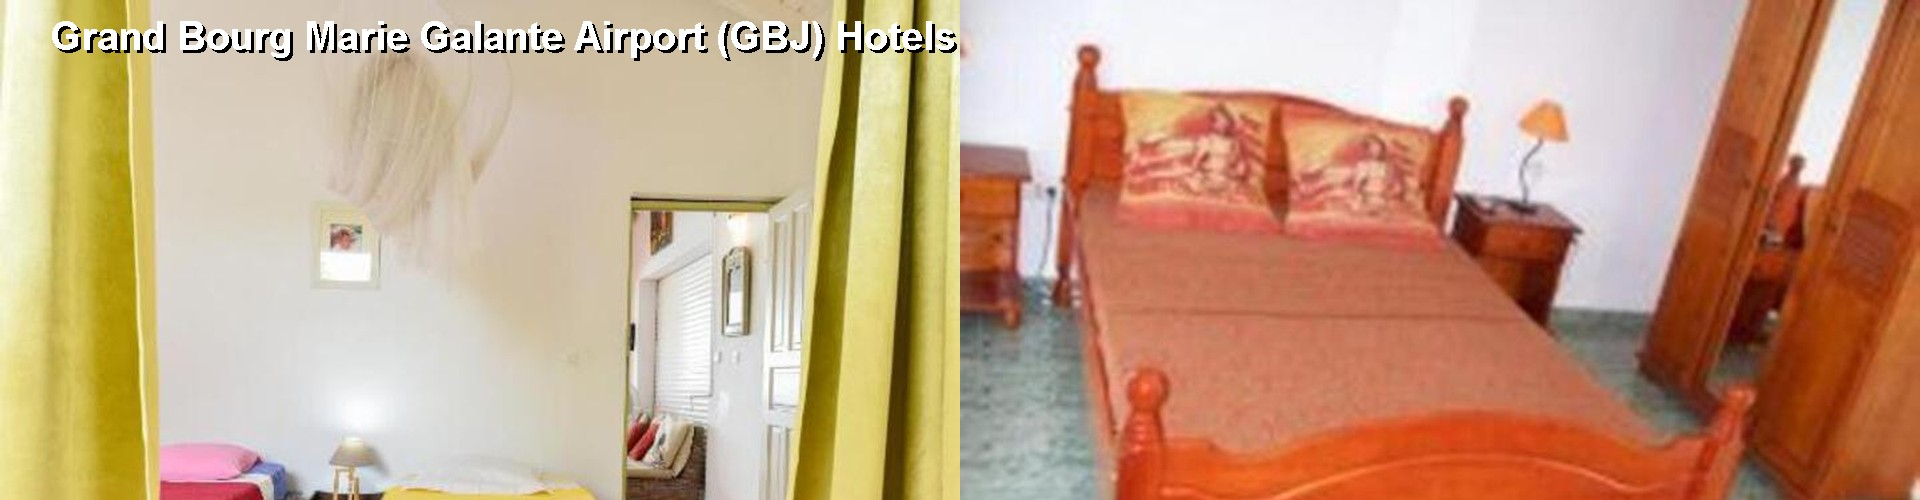 5 Best Hotels near Grand Bourg Marie Galante Airport (GBJ)